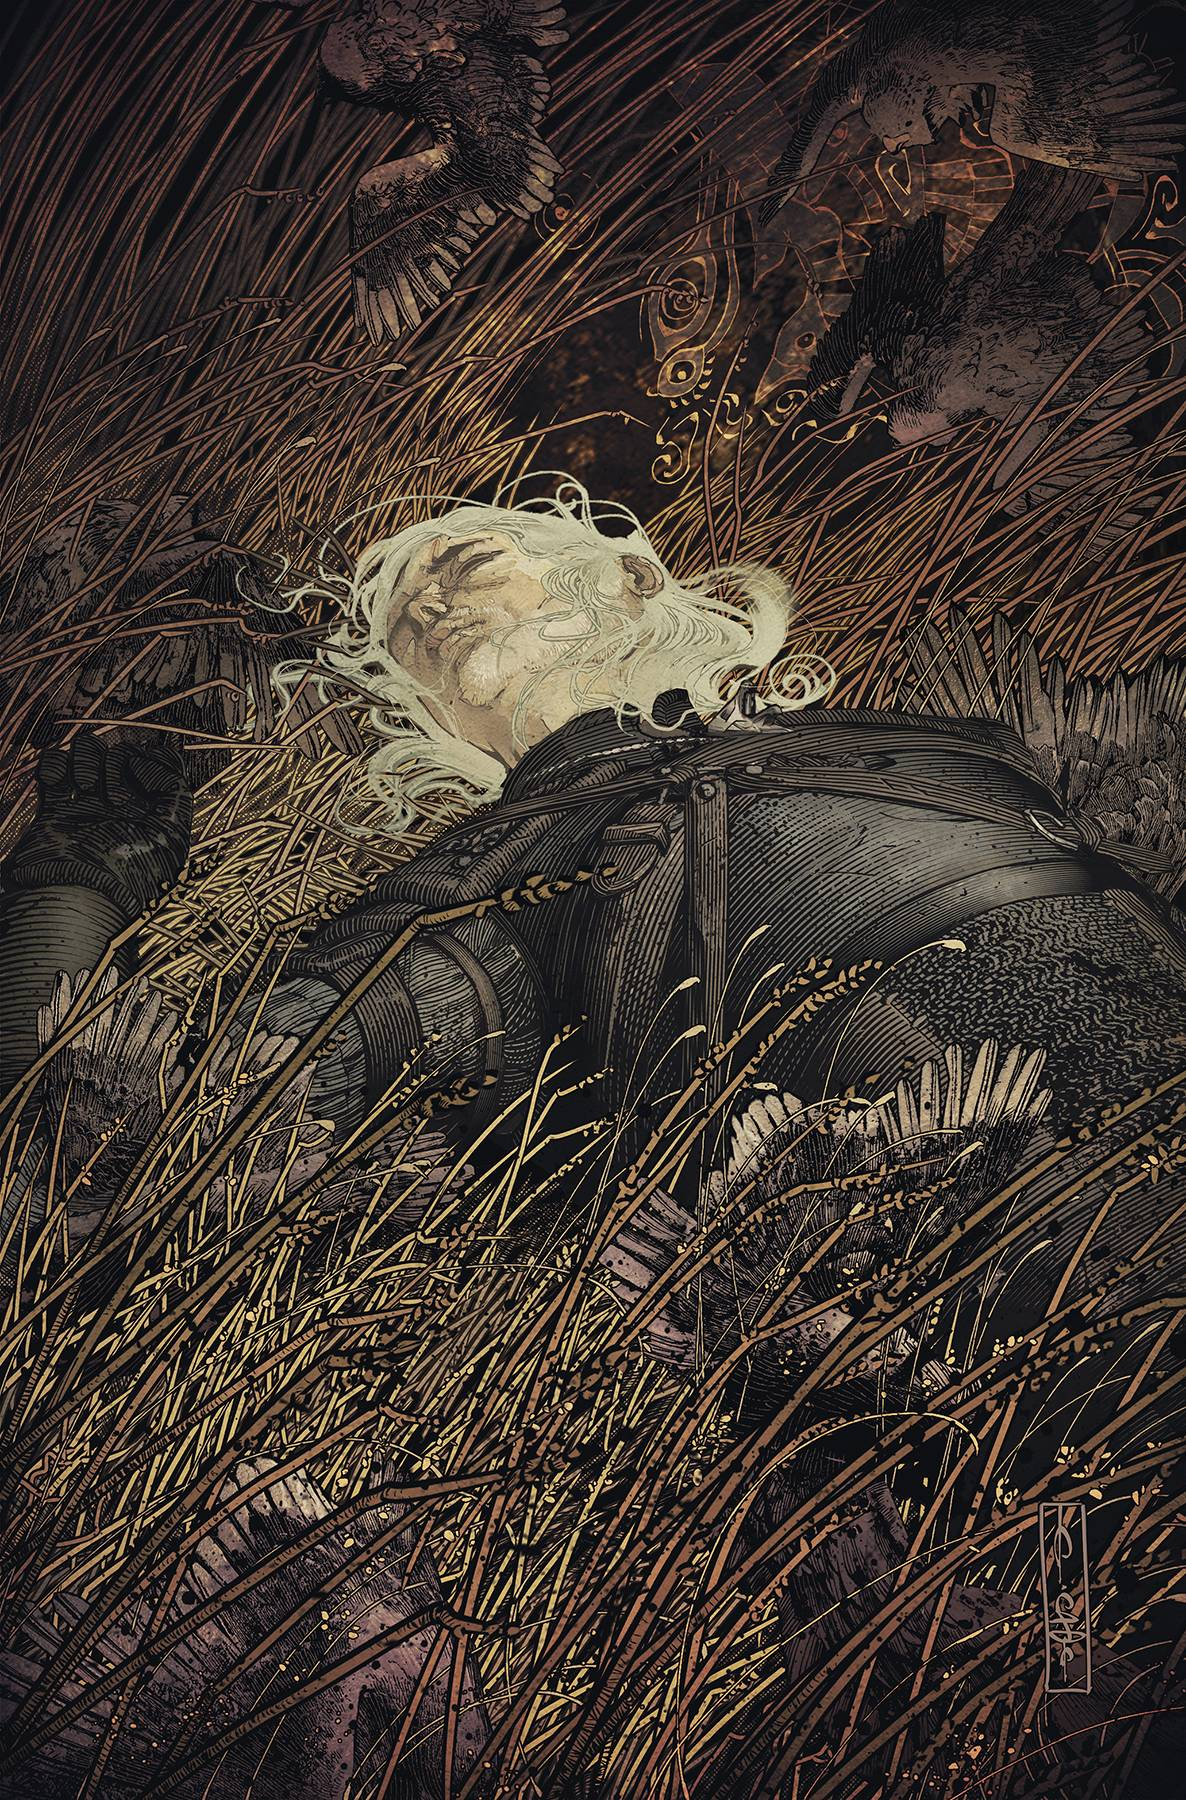 WITCHER FADING MEMORIES #2 (OF 4) CVR A CAGLE